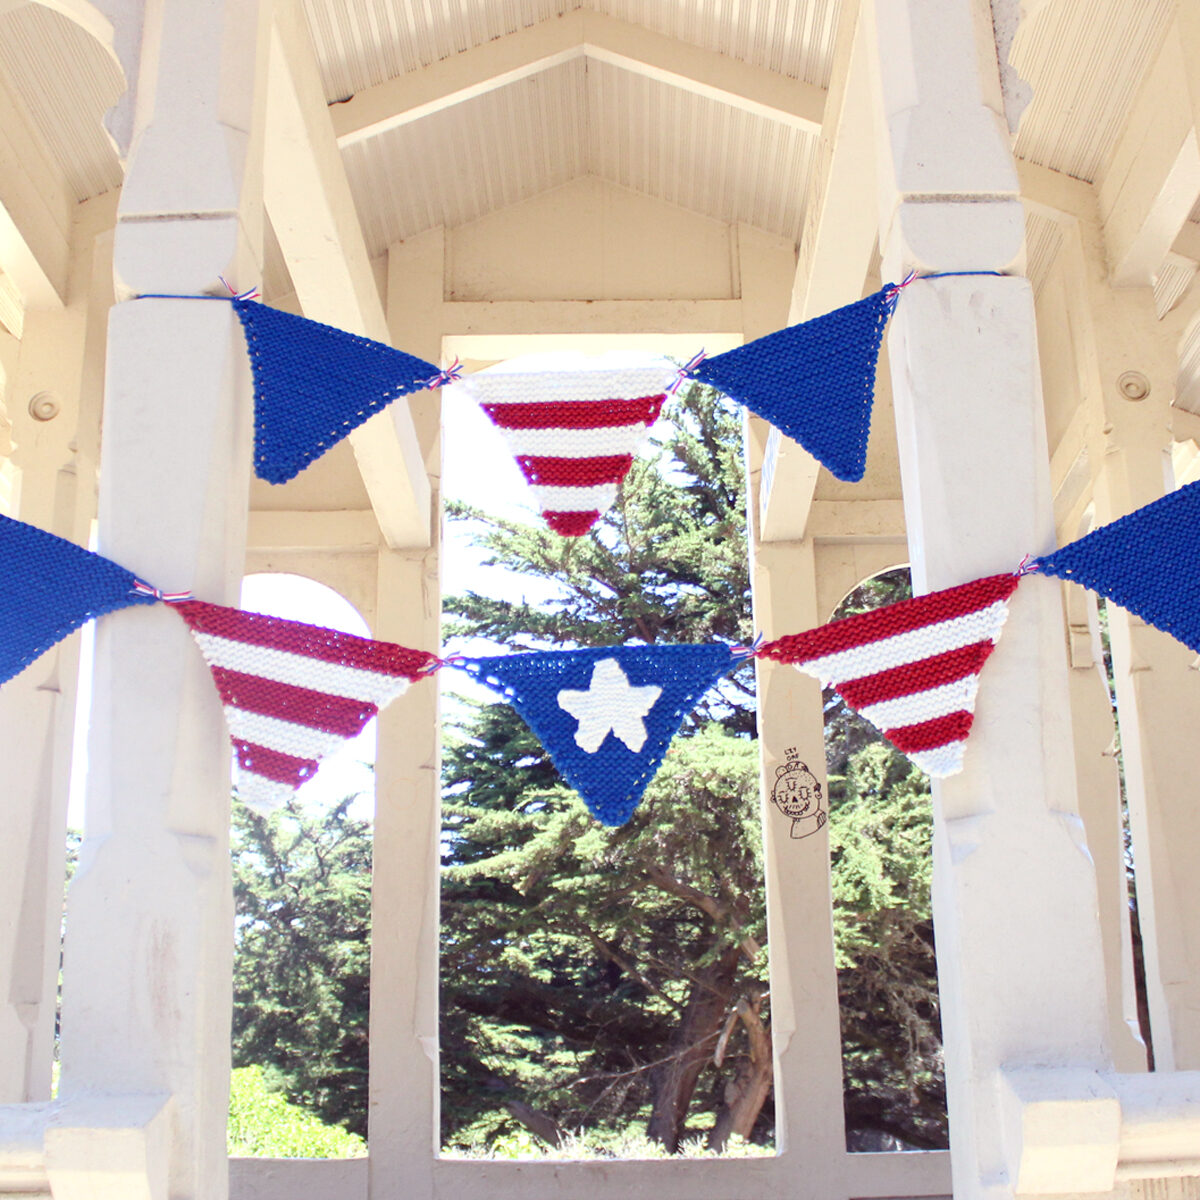 Knitted pennant banner in patriotic USA colors of red, white, and blue strung within a white gazebo.